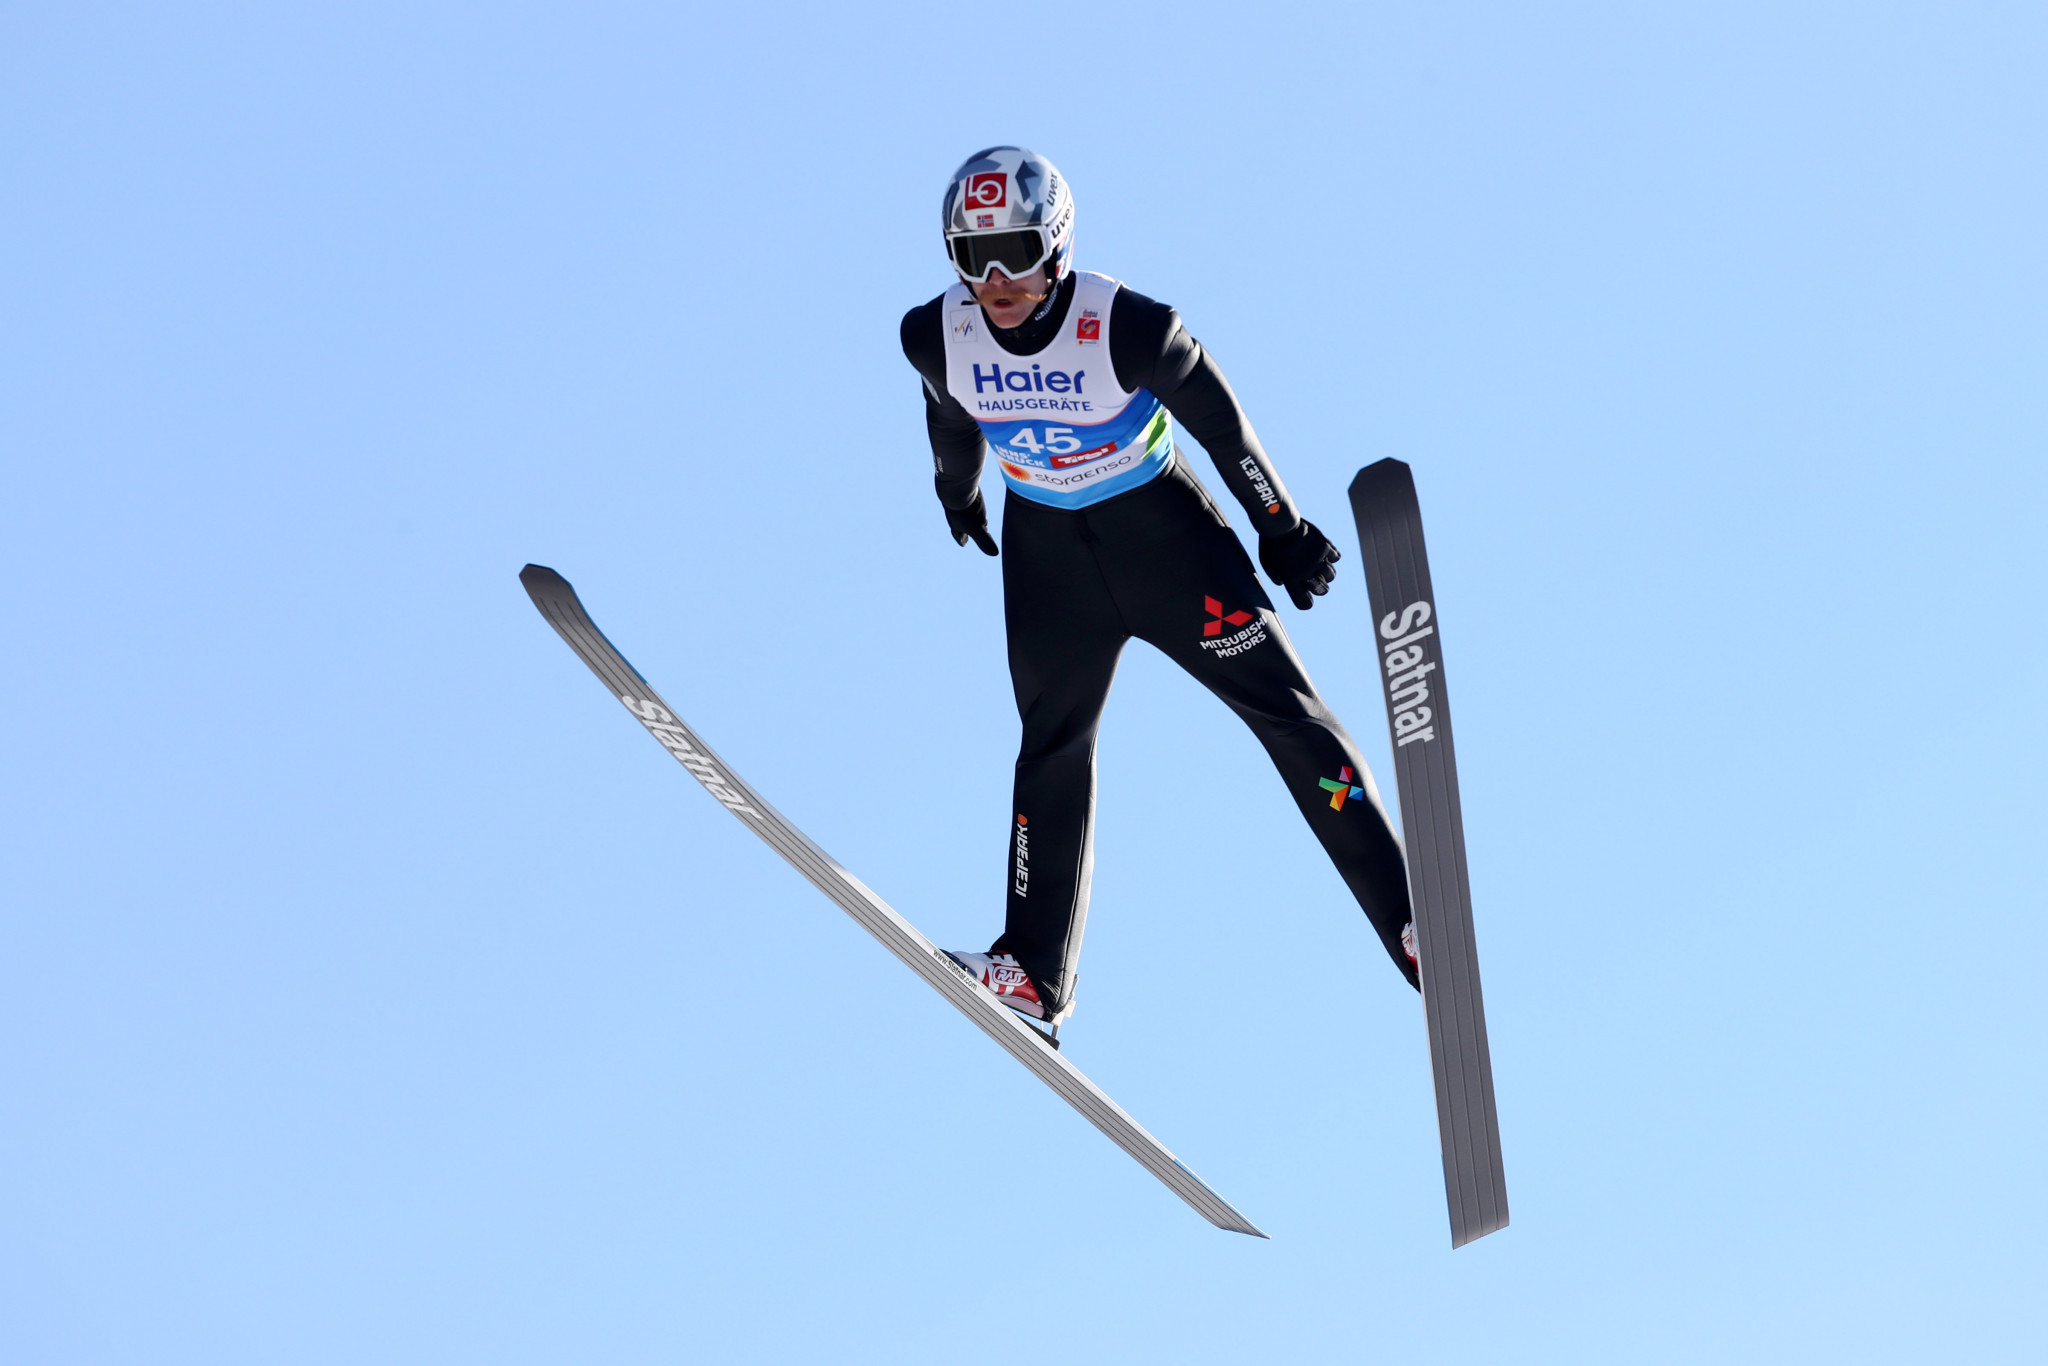 Johansson tops Ski Jumping World Cup qualification in Zakopane